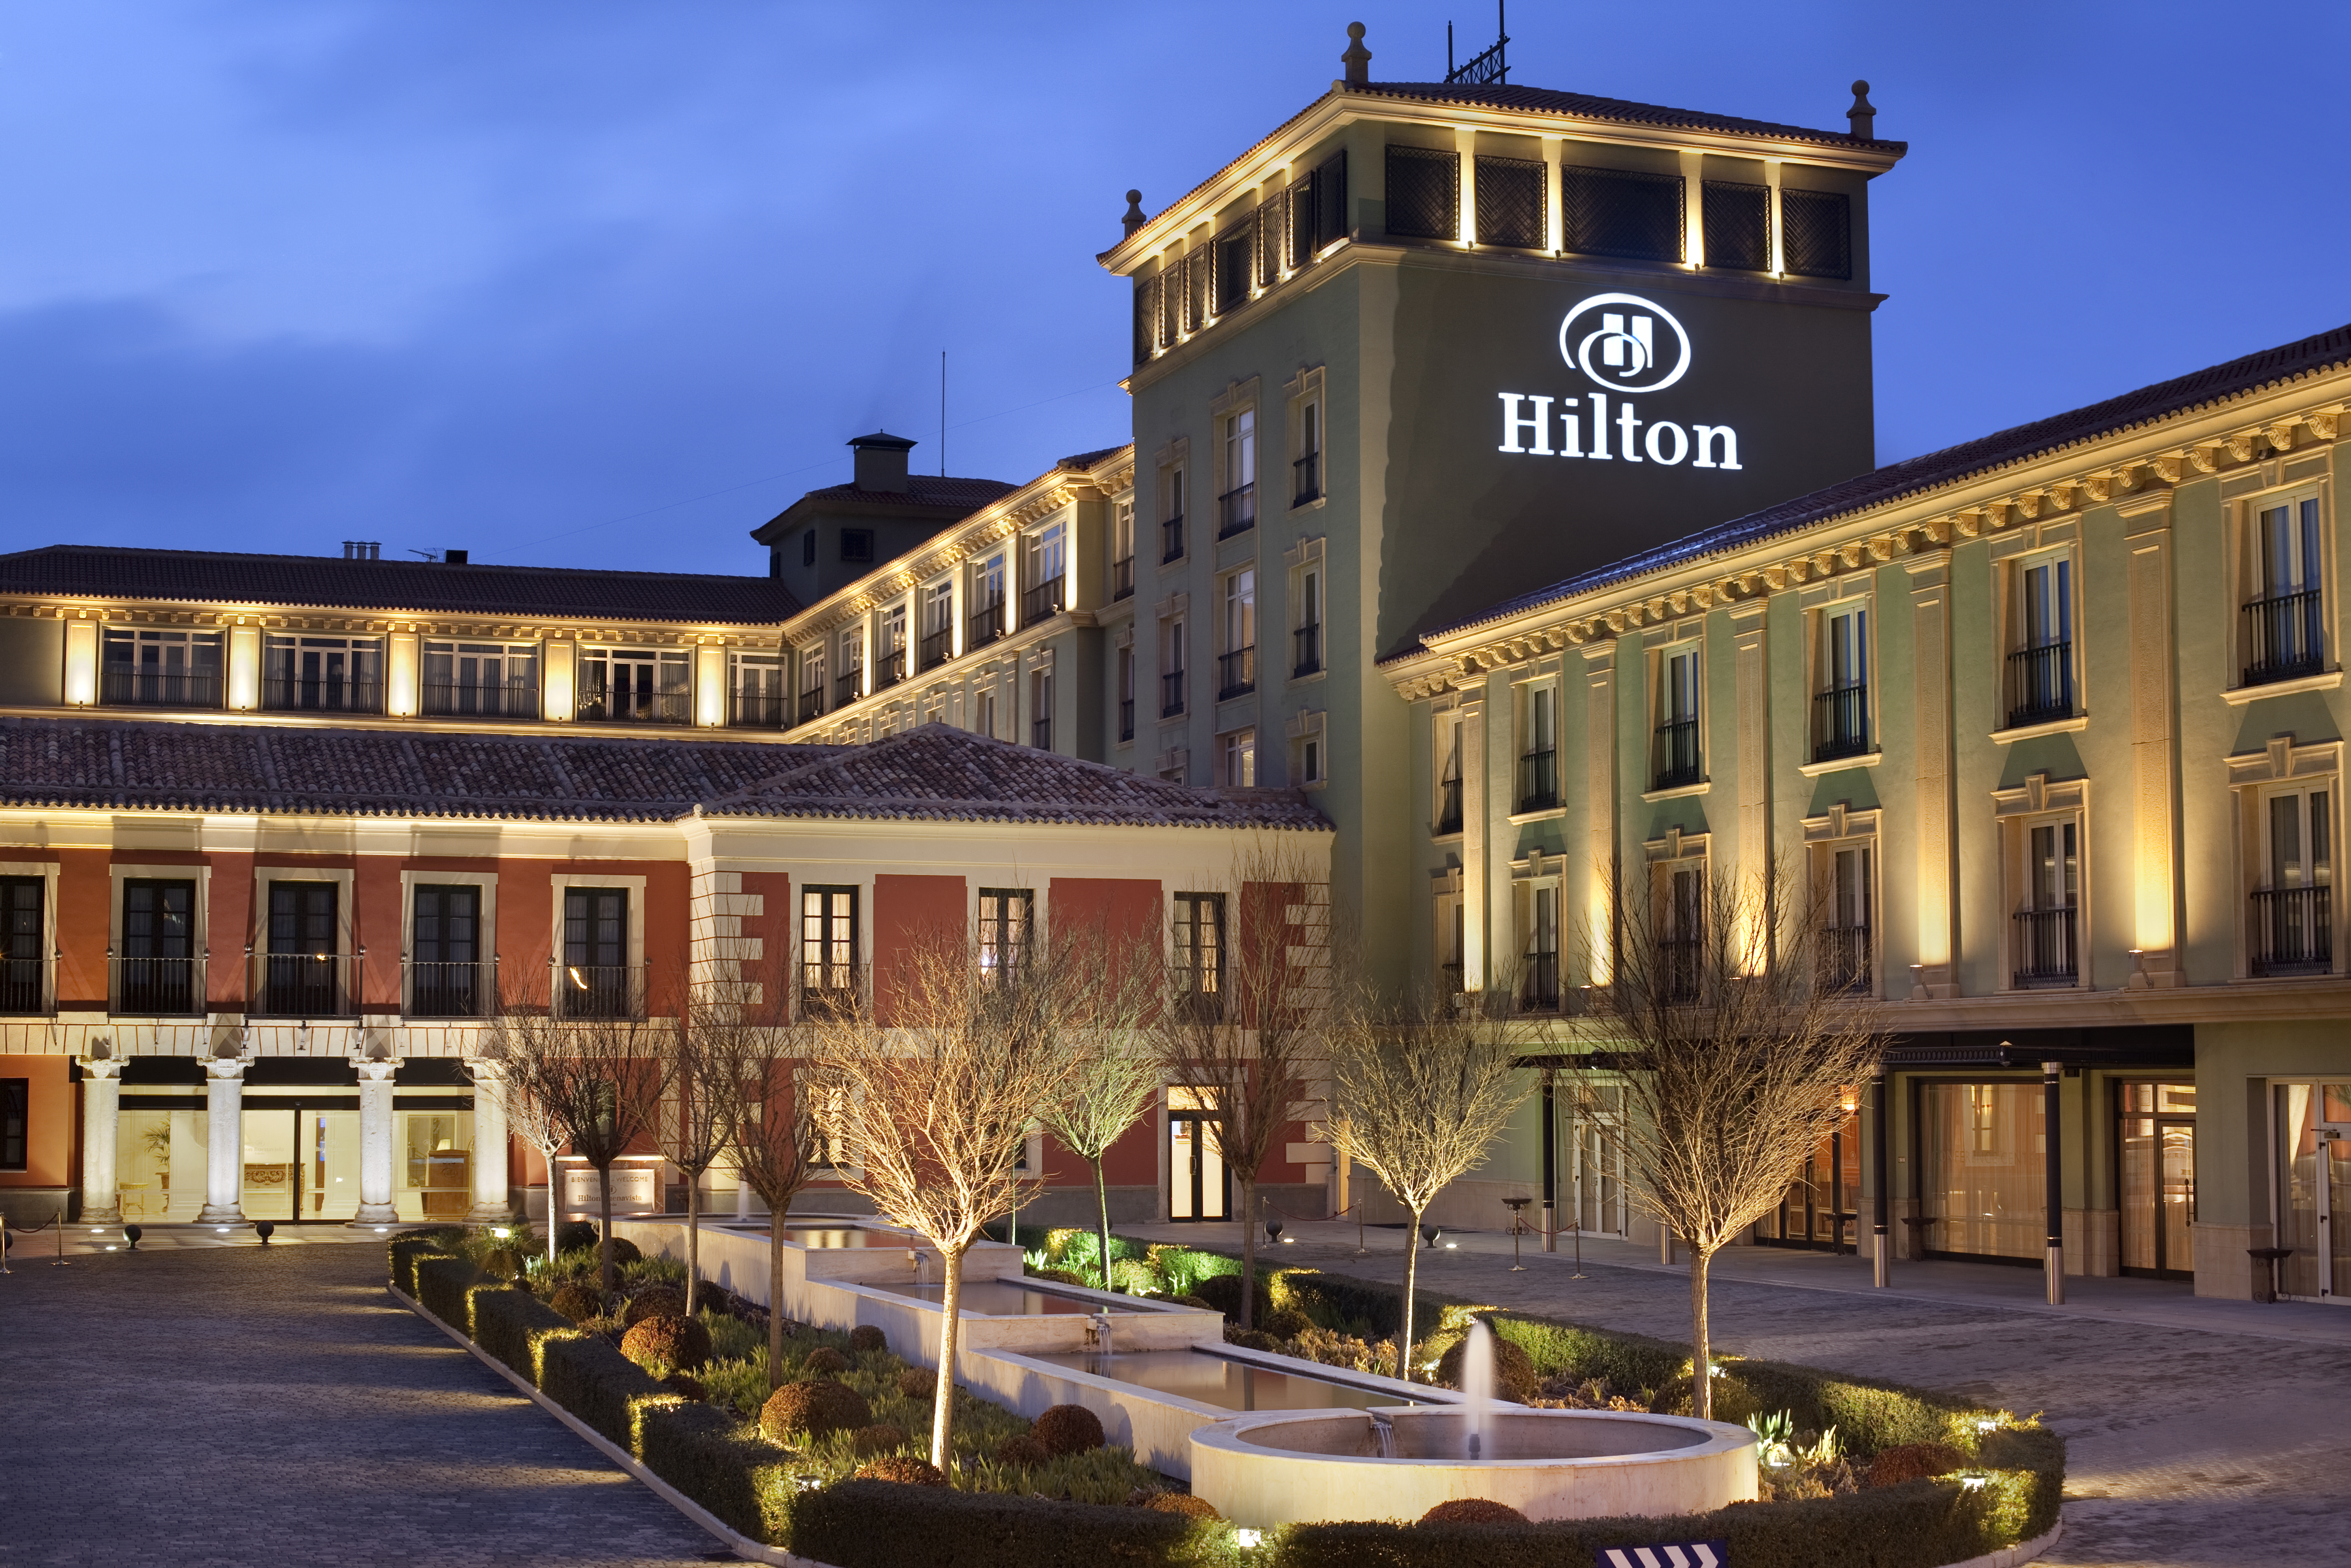 hiton hotel Hilton hotels & resorts (formerly known as hilton hotels) is a global brand of full-service hotels and resorts and the flagship brand of hilton the original company was founded by conrad hilton as of 2017, there were more than 570 hilton hotels & resorts properties in 85 countries and territories across six continents.